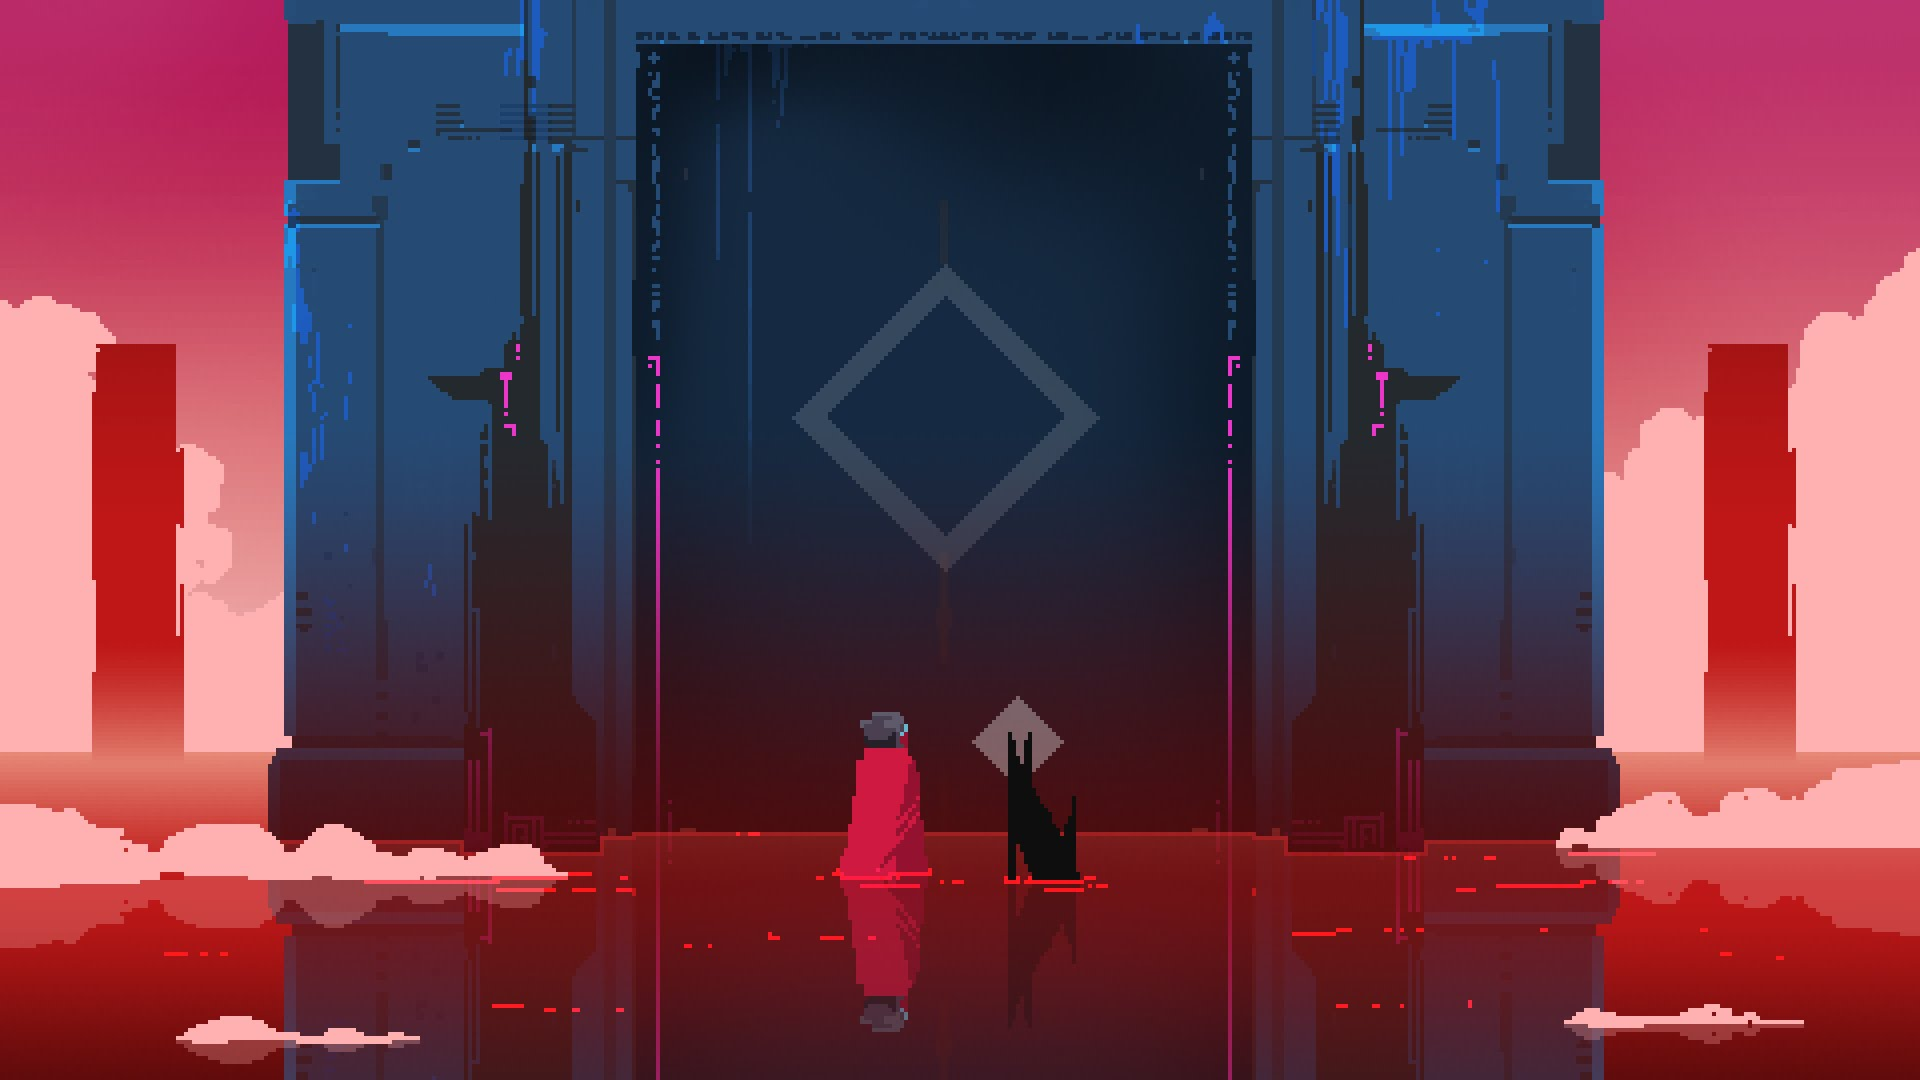 hyper light drifter story